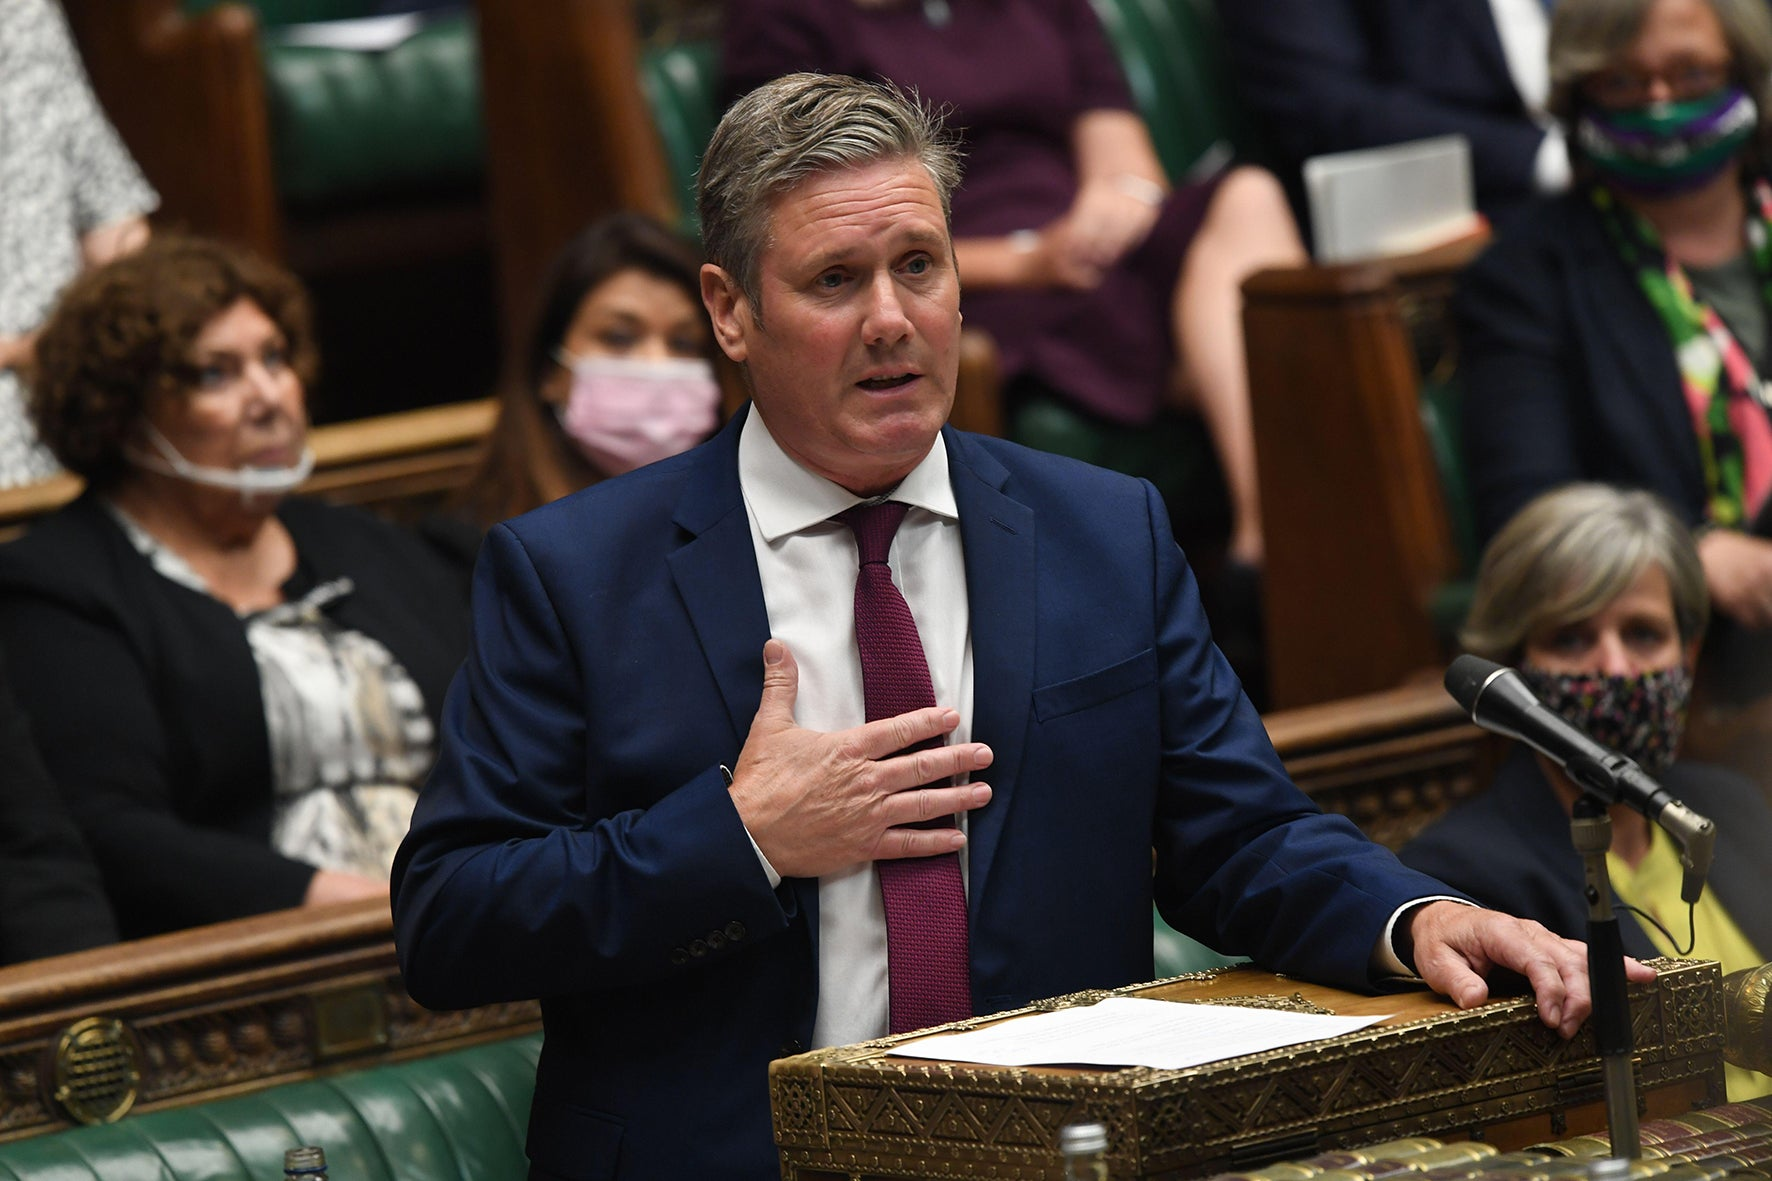 Keir Starmer needs to be clear about who his project's enemies are